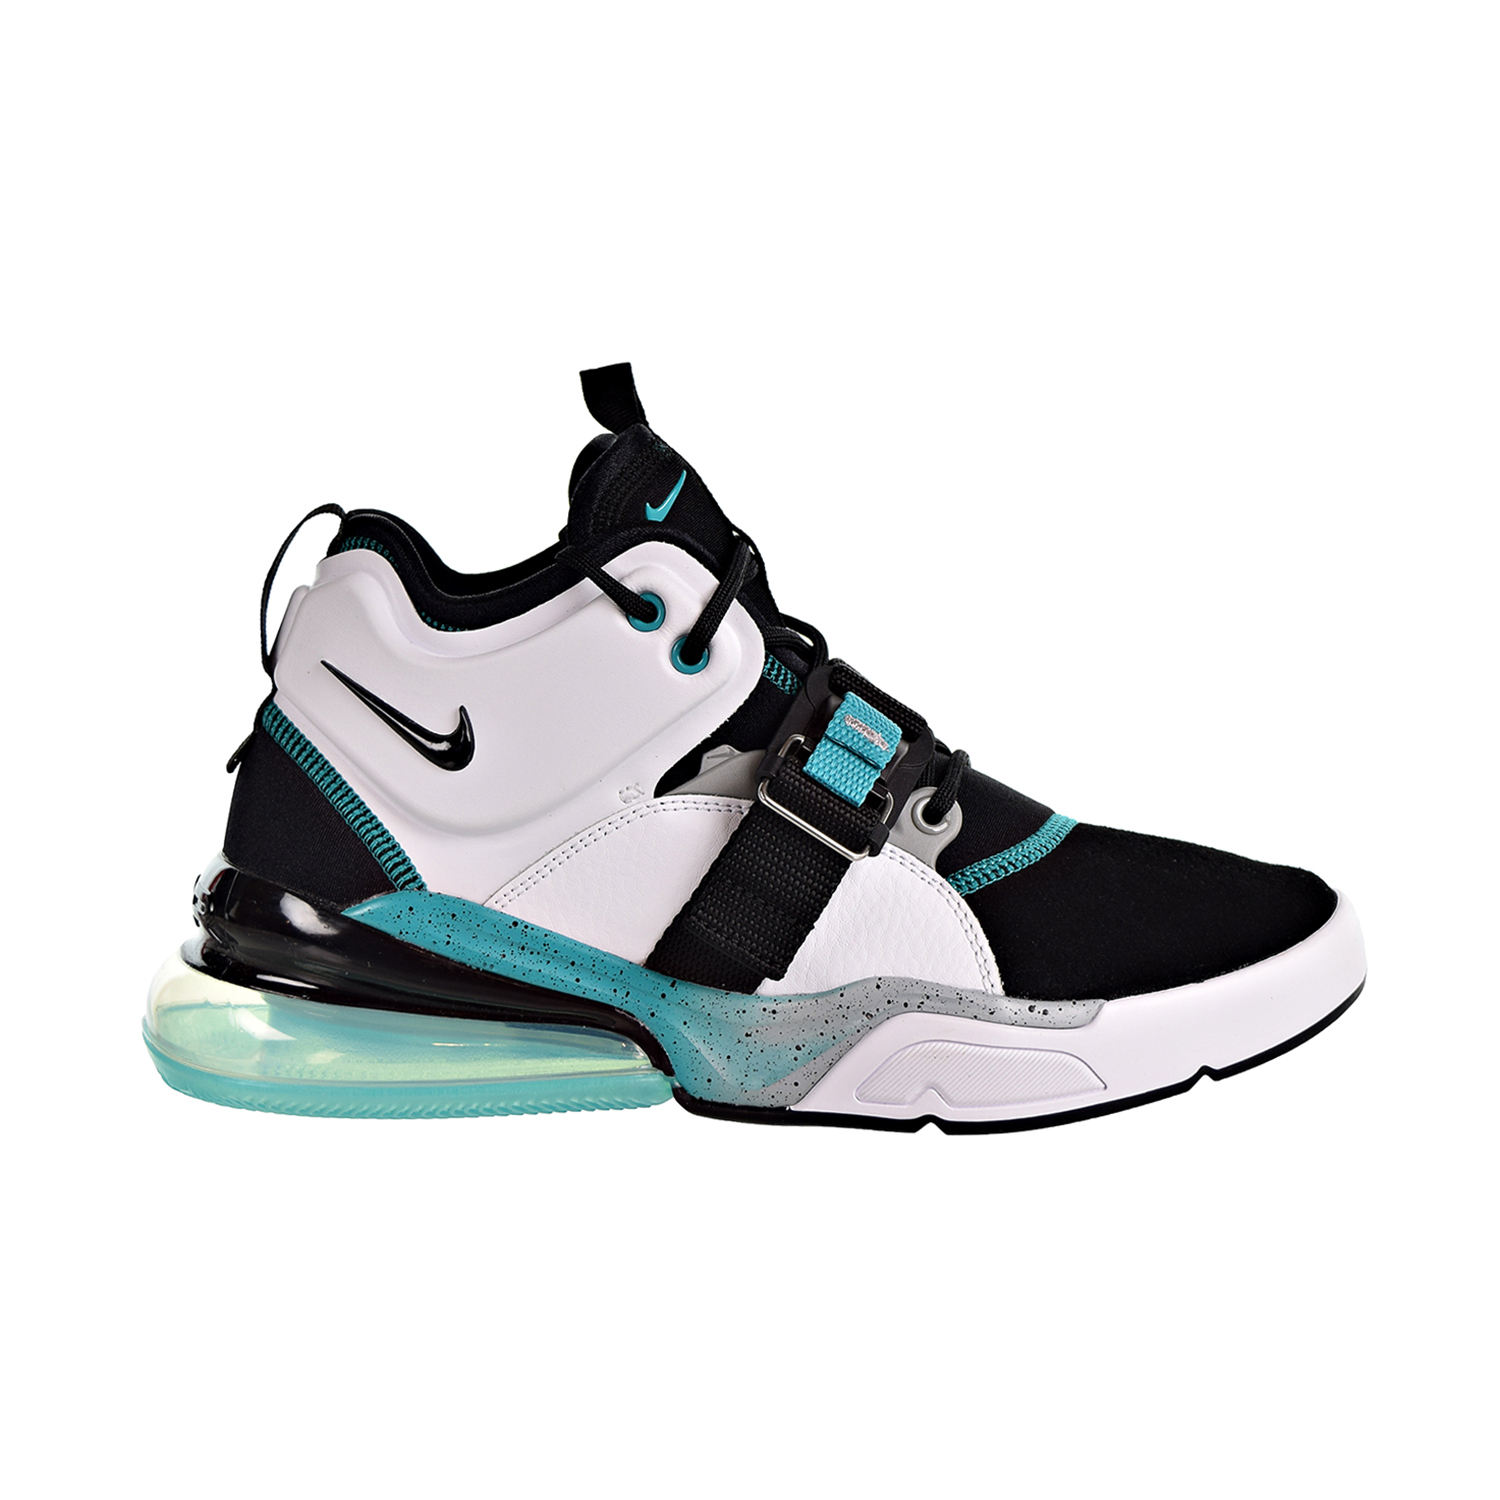 1500994202 Details about Nike Air Force 270 Big Kids' Shoes White/Black/Wolf Grey  AJ8208-100